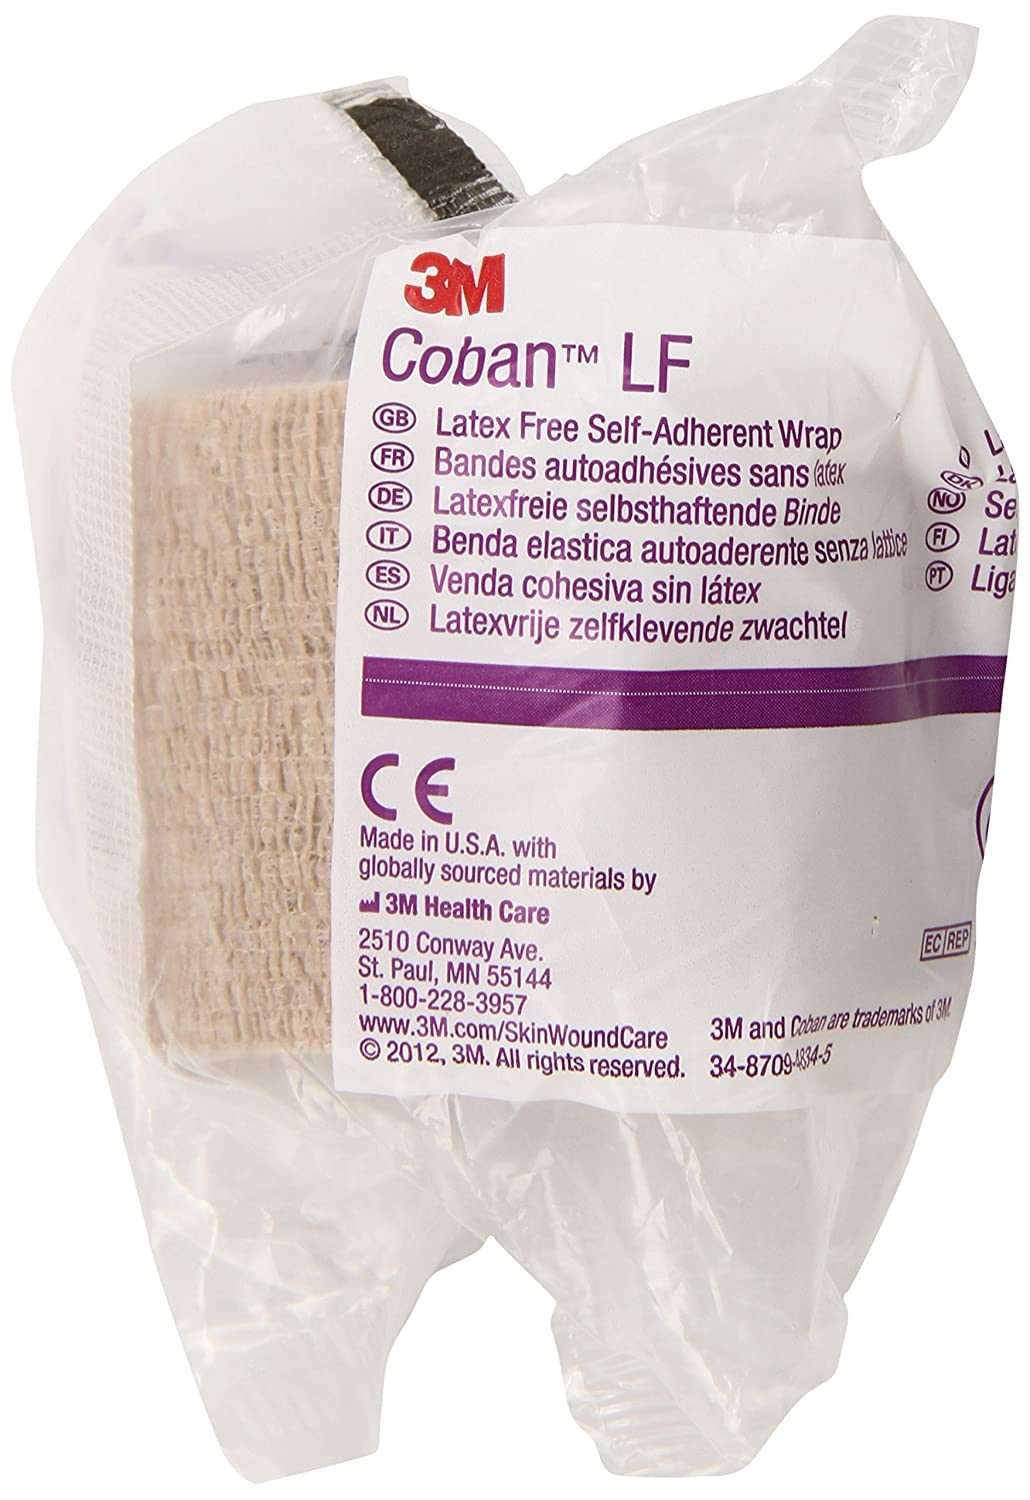 3M Coban LF Latex Free Self-Adherent Wrap 2082 (Pack of 36)